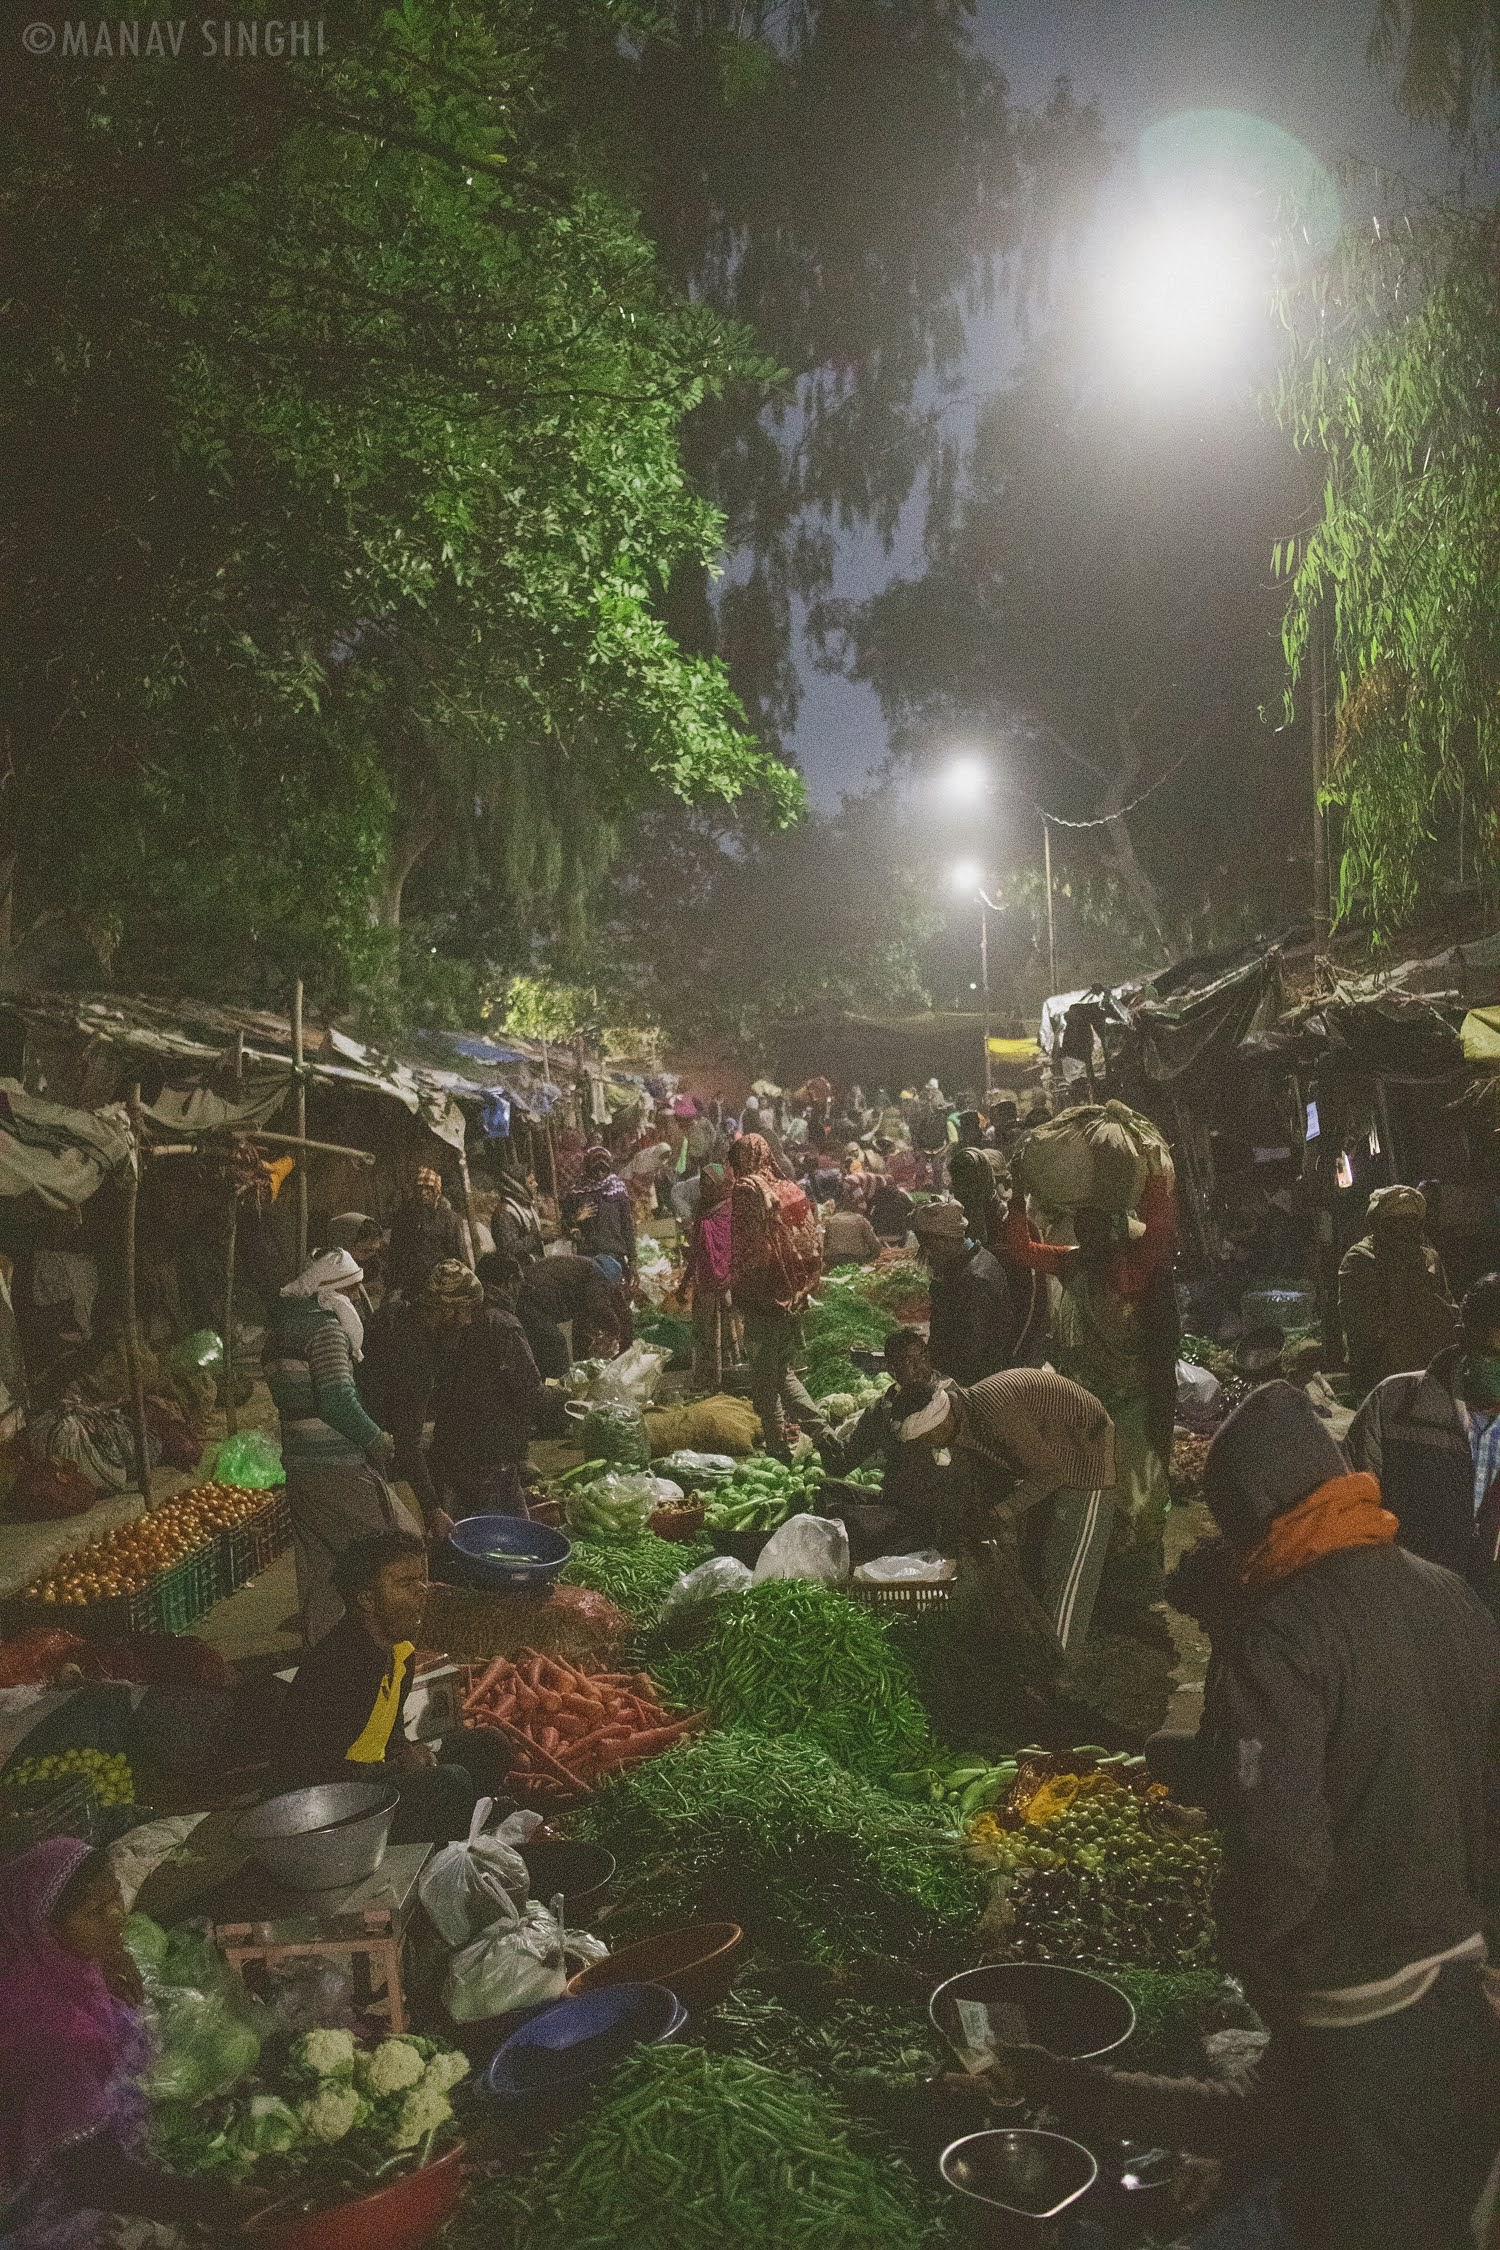 Early Morning Shot of Vegetable Market, Old City Jaipur.